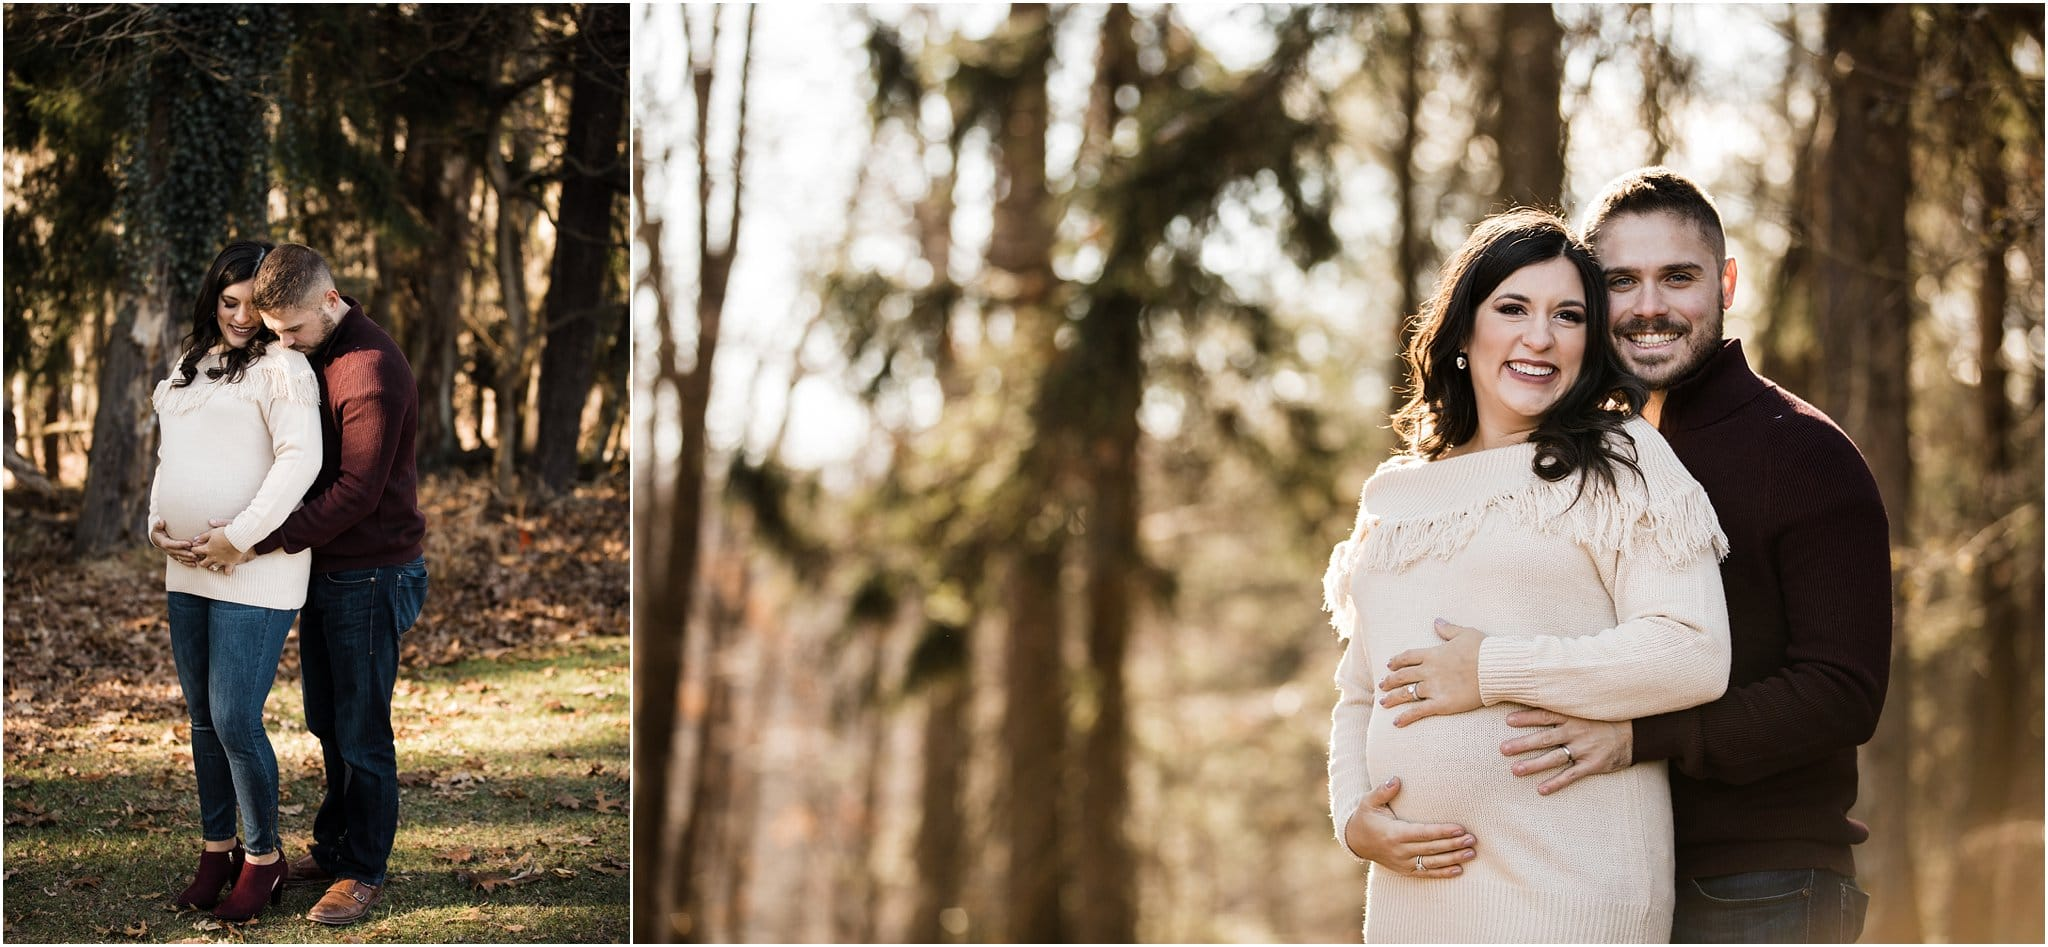 maternity session at hartwood acres pittsburgh